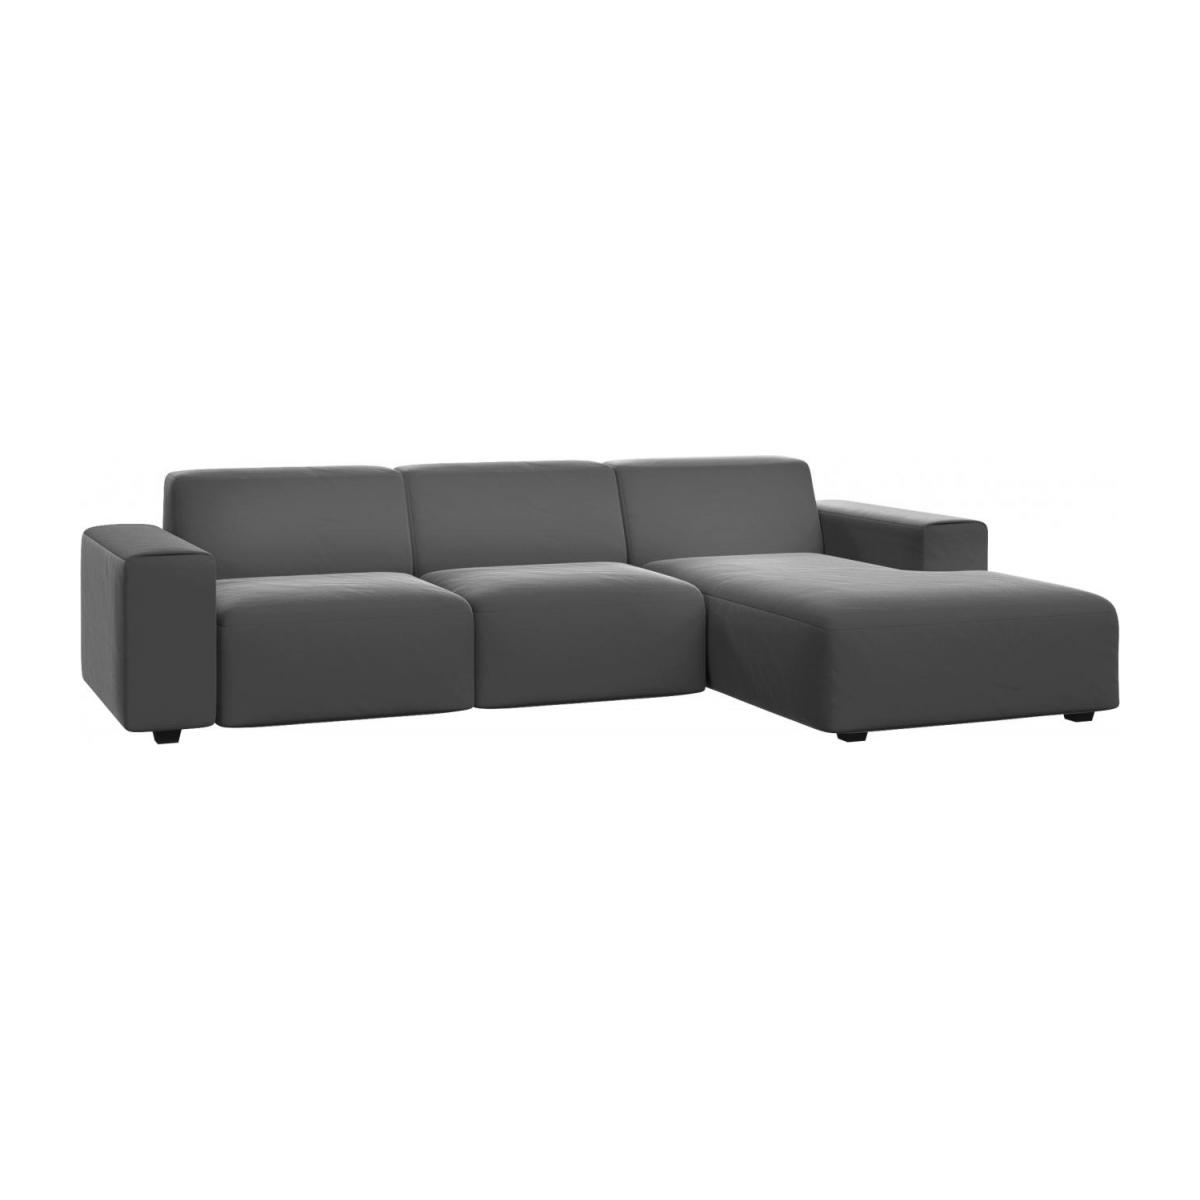 posada 3 sitzer sofa mit chaiselongue rechts aus samt. Black Bedroom Furniture Sets. Home Design Ideas